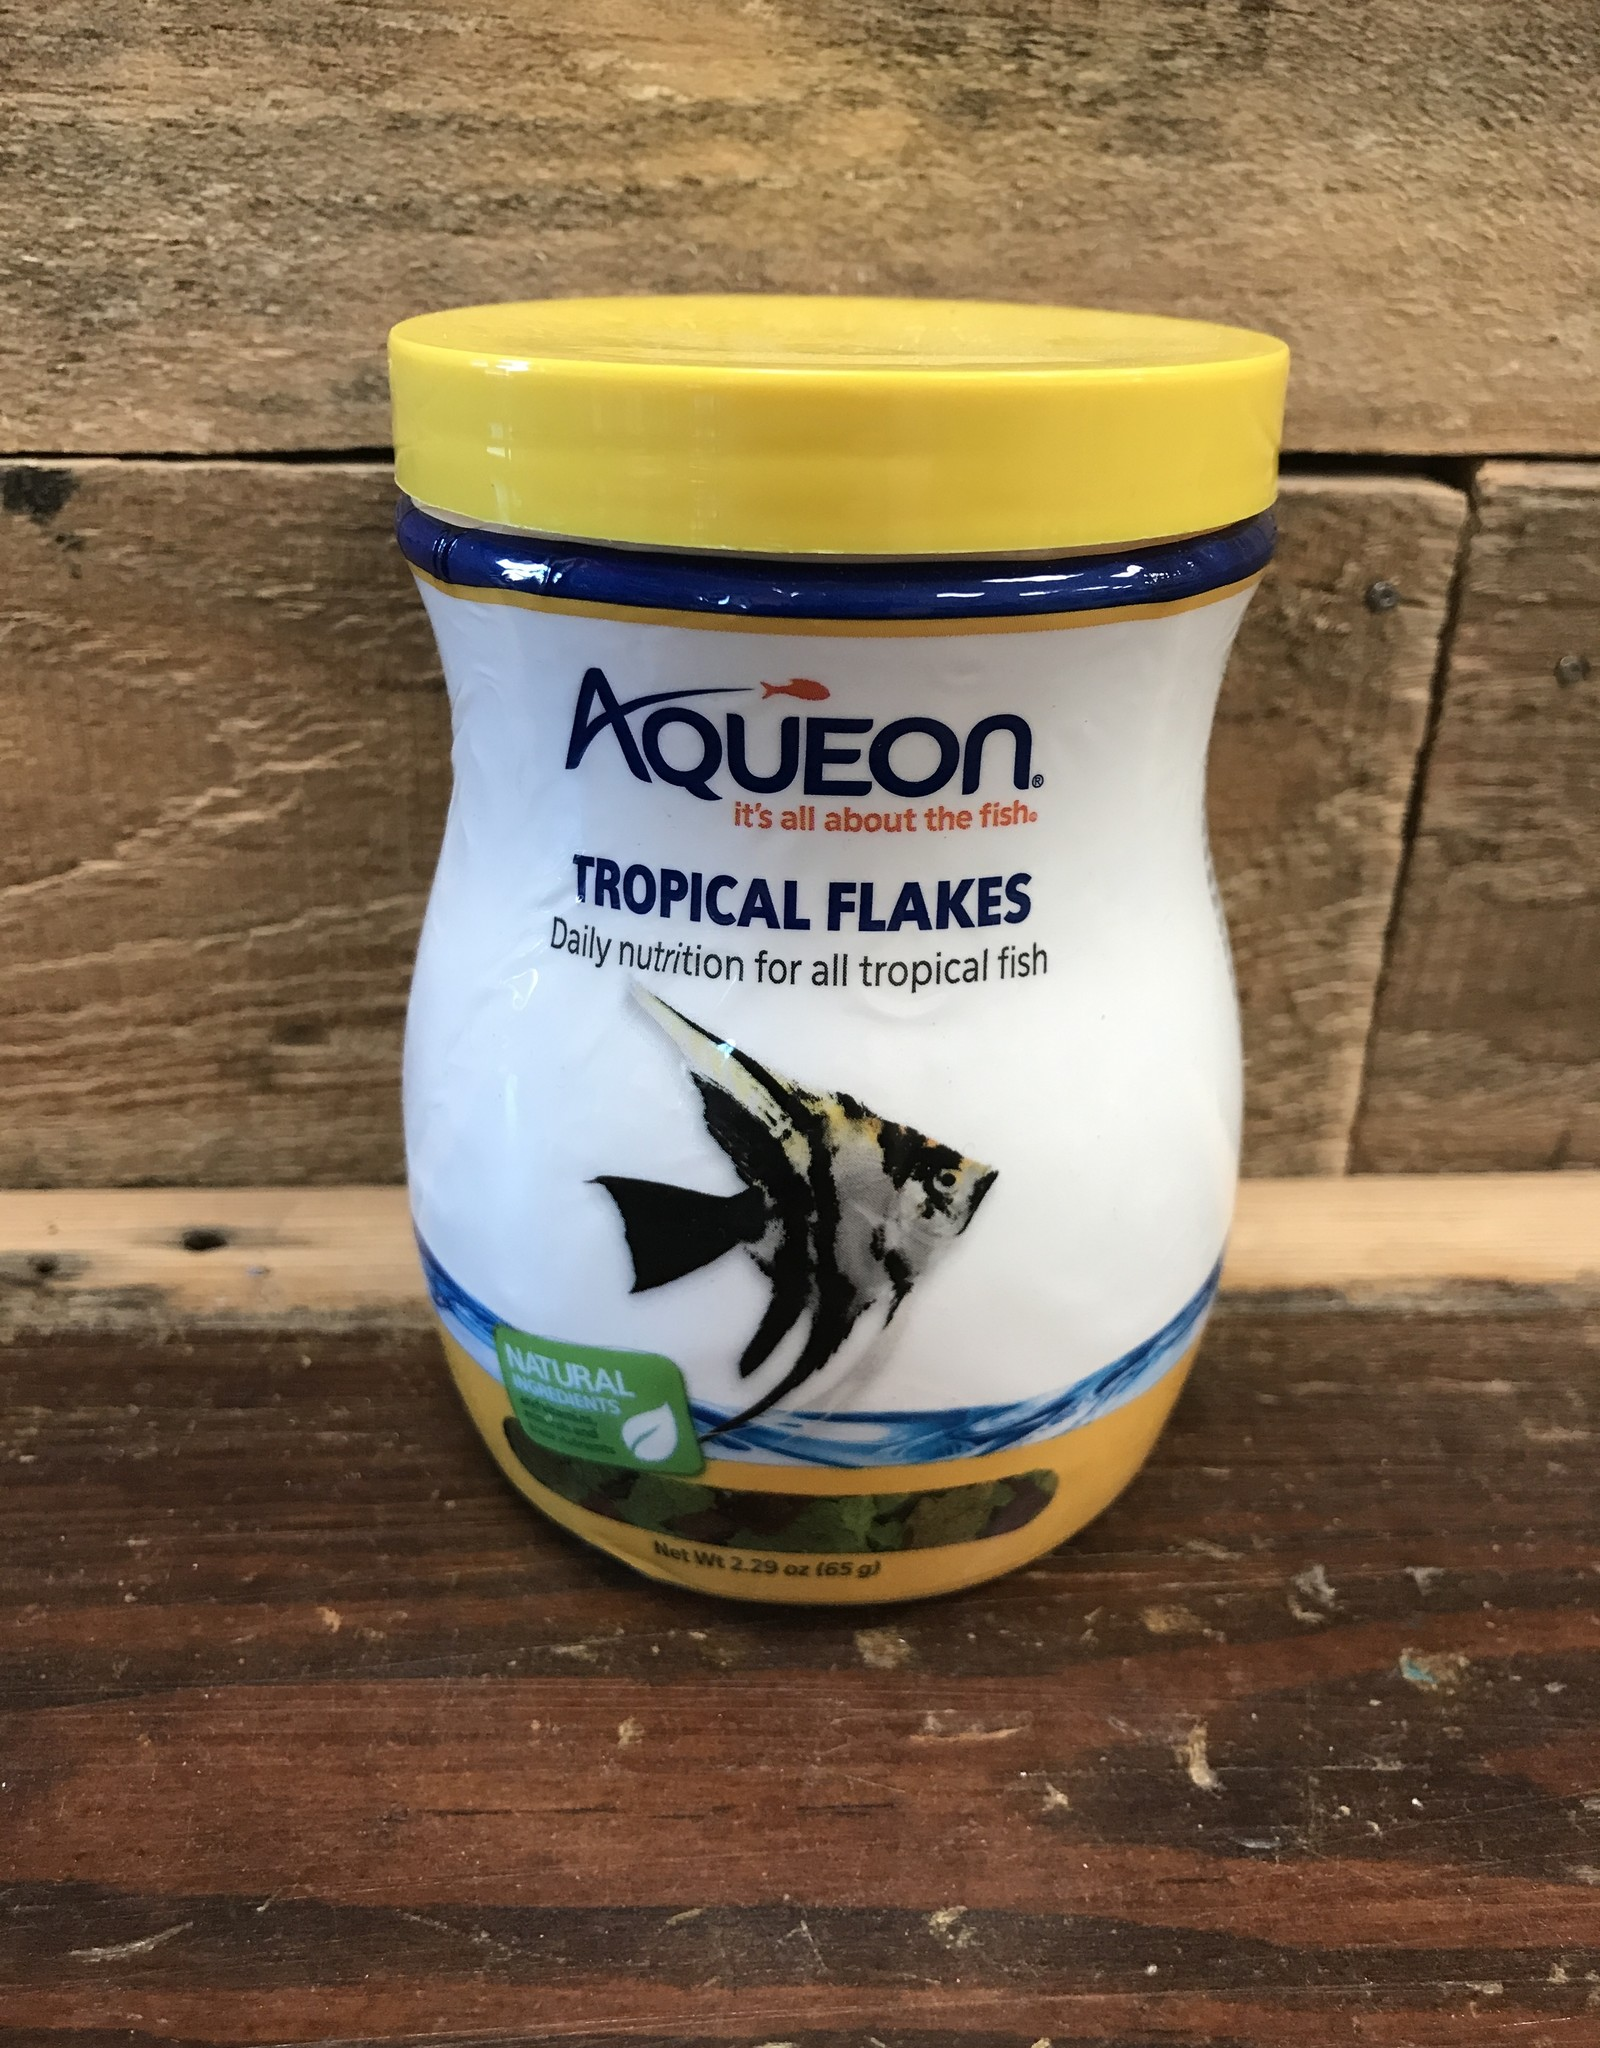 Aqueon Aqueon 2.29 OZ. TROPICAL FLAKES